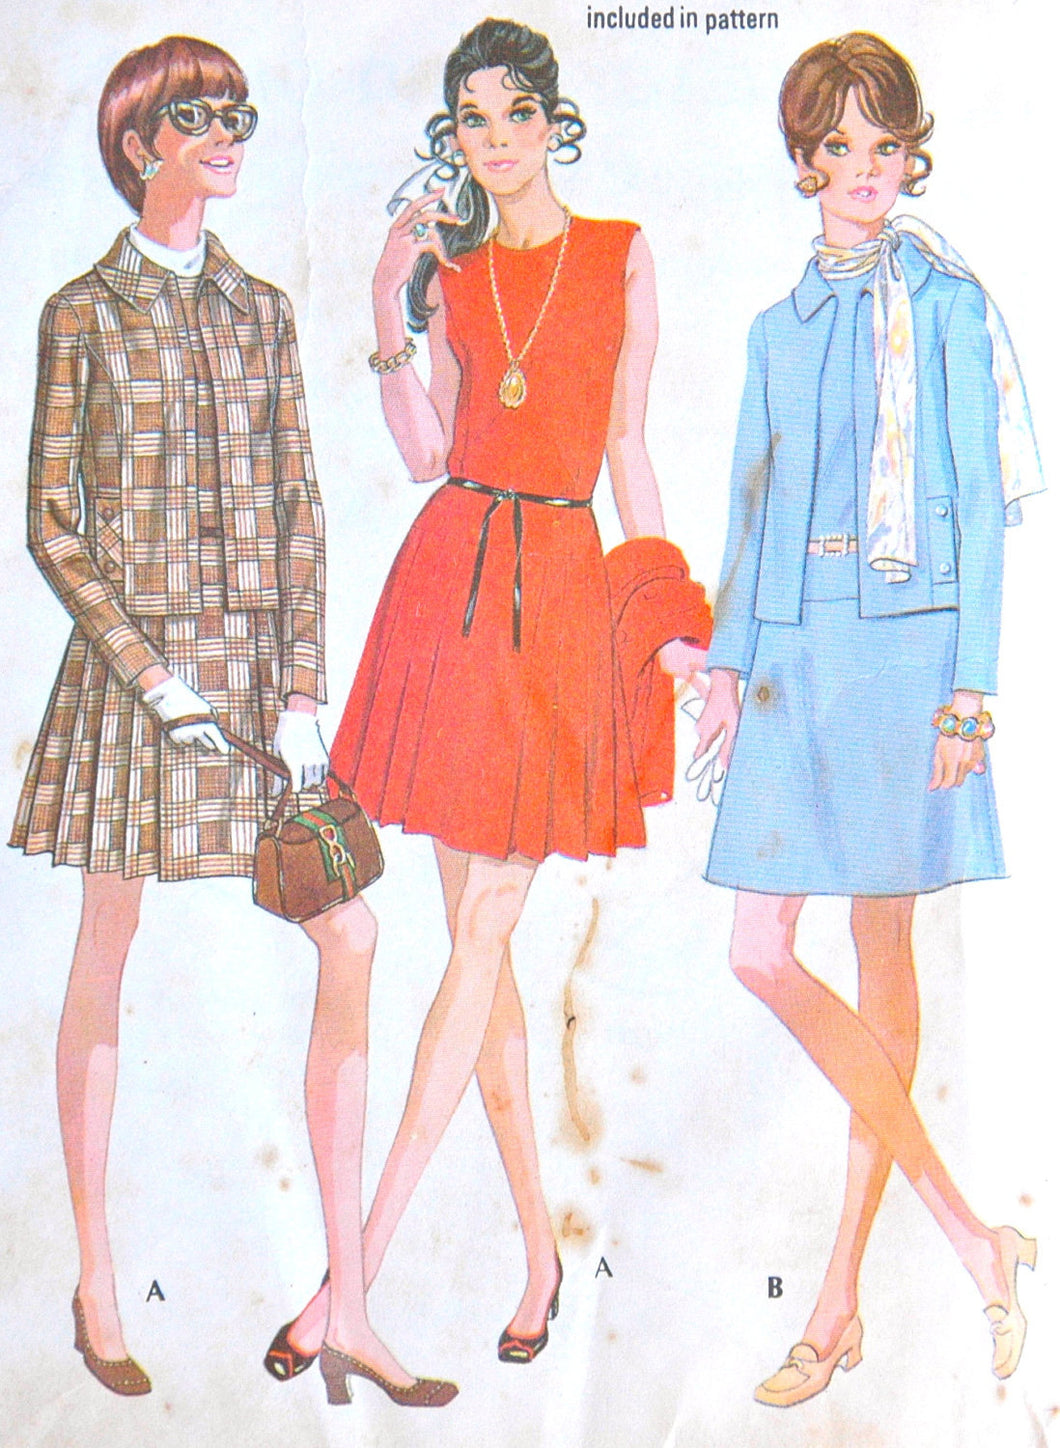 DISCOUNTED** 1960's McCall's Dress and Jacket Pattern - Bust 32 1/2